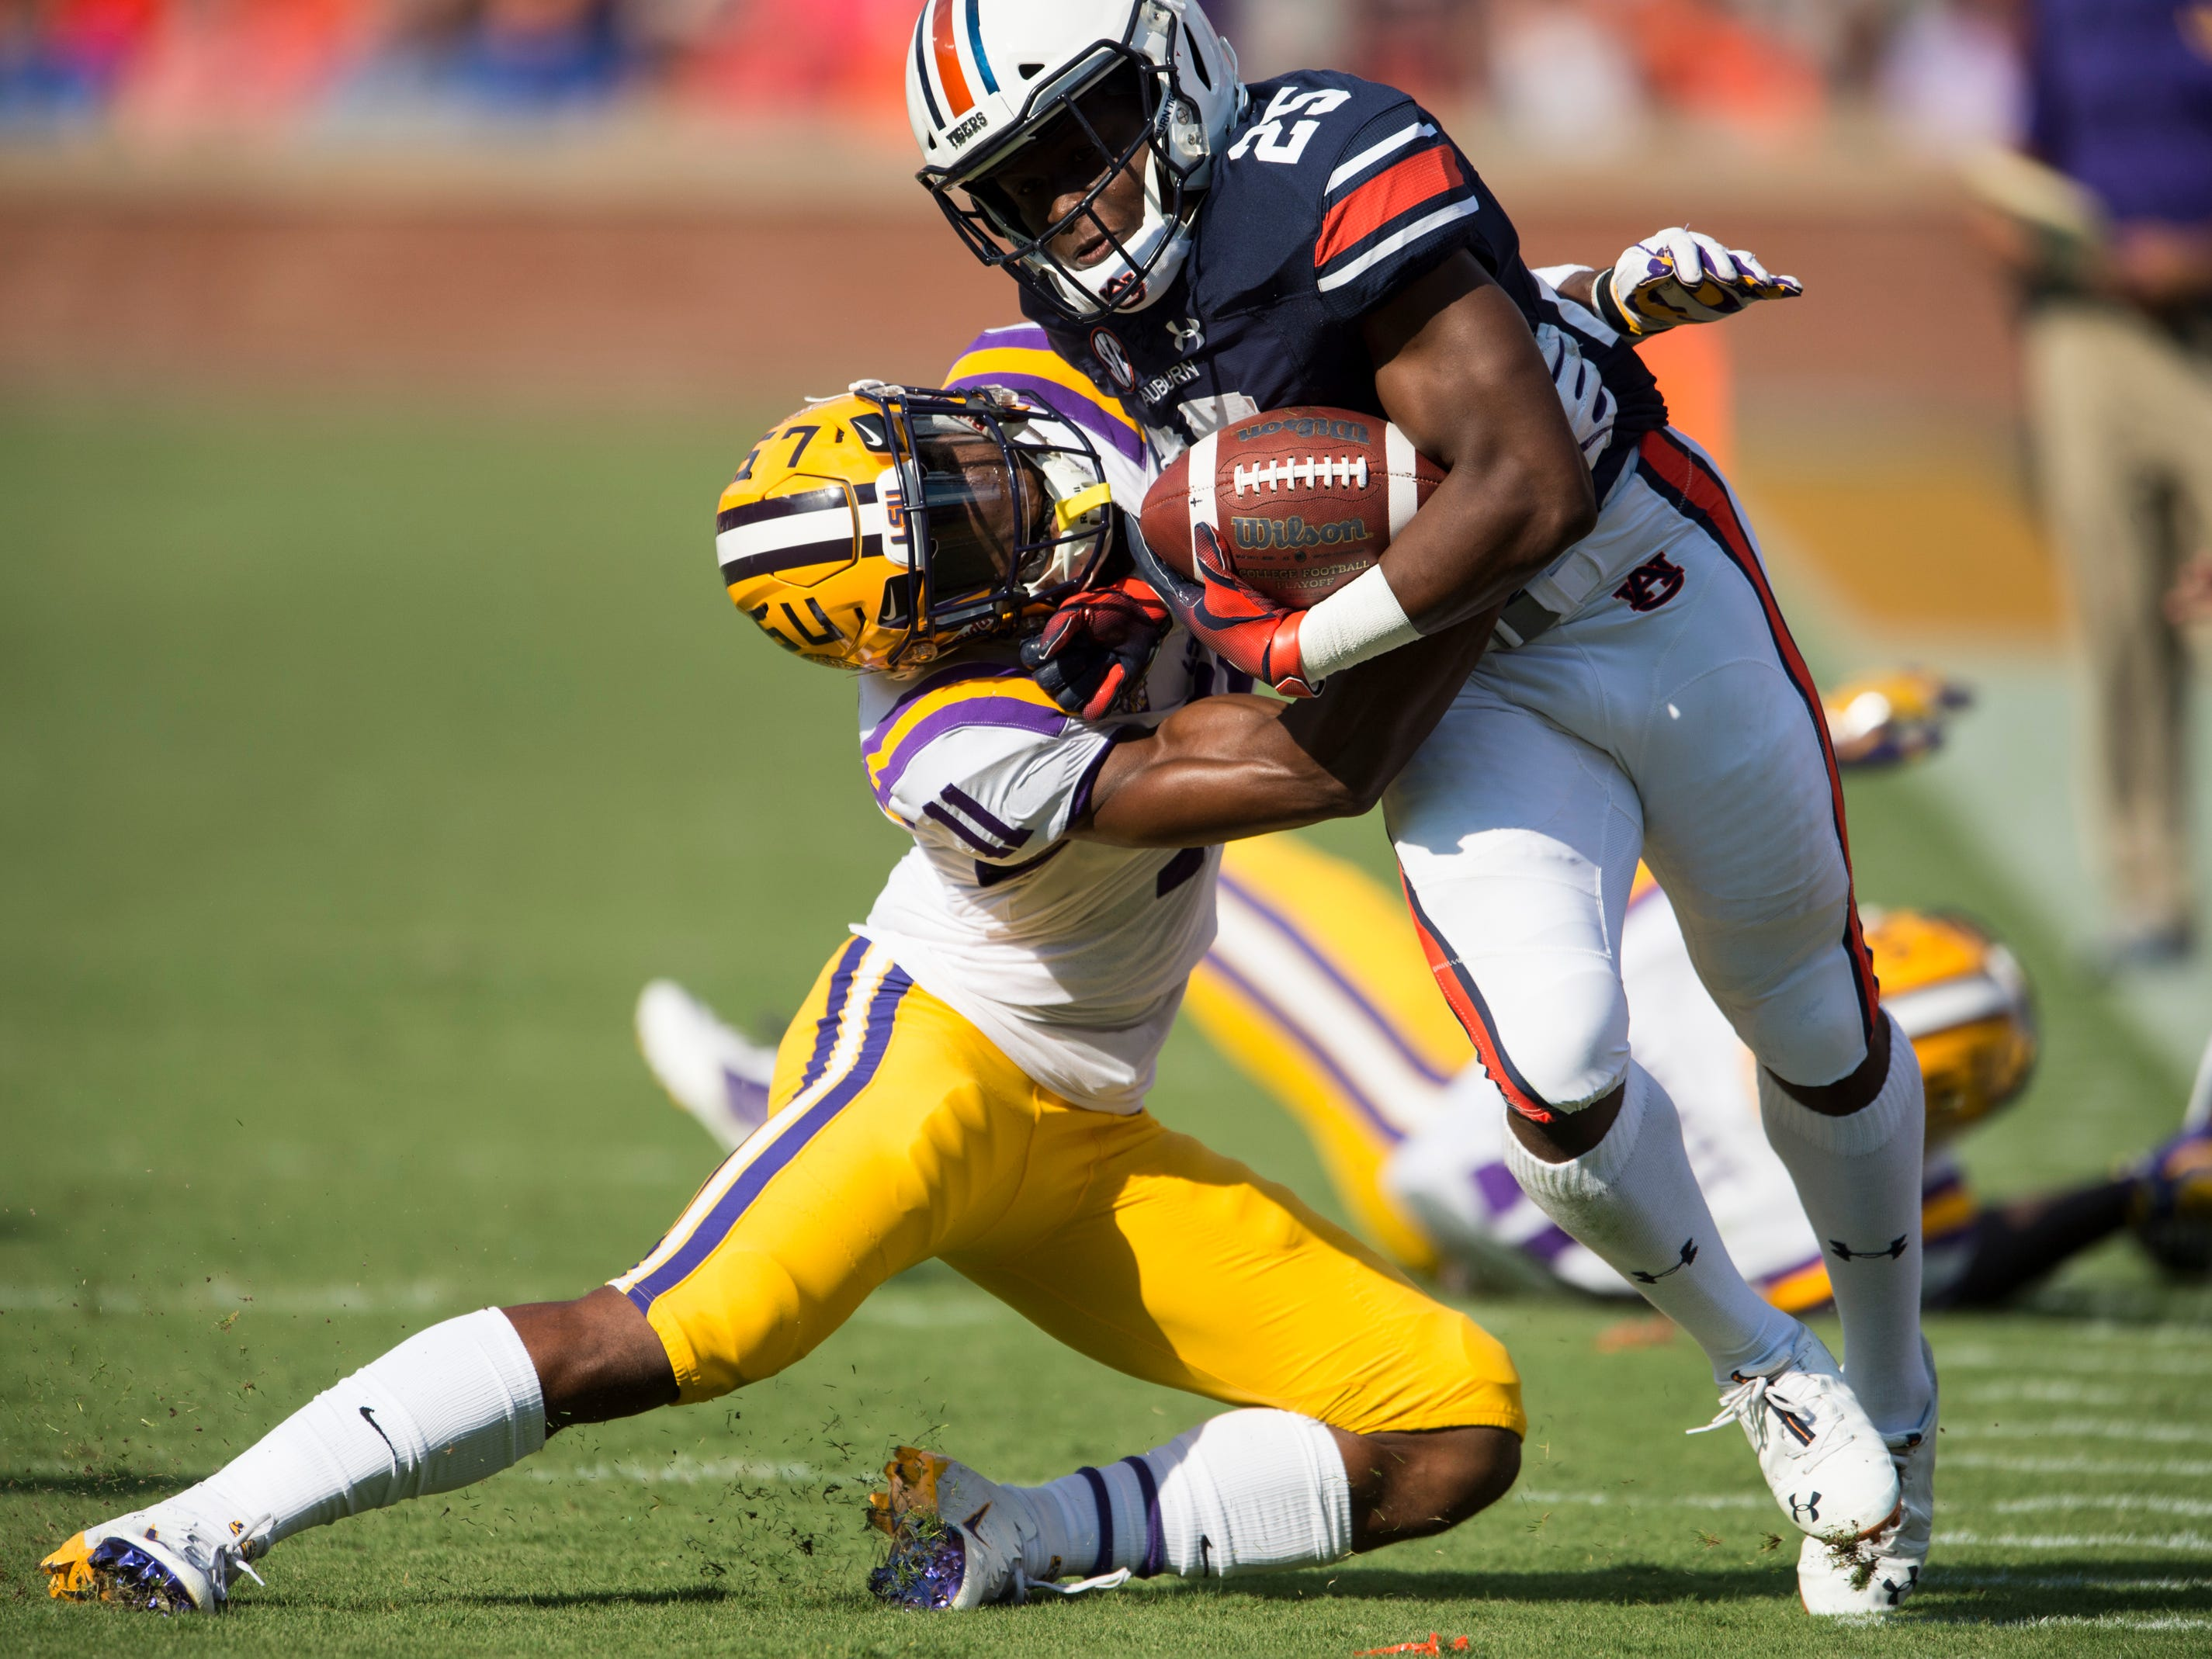 Auburn's Shaun Shivers (25) is shoved out of bounds by LSU's Terrence Alexander (11) at Jordan-Hare Stadium in Auburn, Ala., on Saturday, Sept. 15, 2018. Auburn leads LSU 14-10 at halftime.